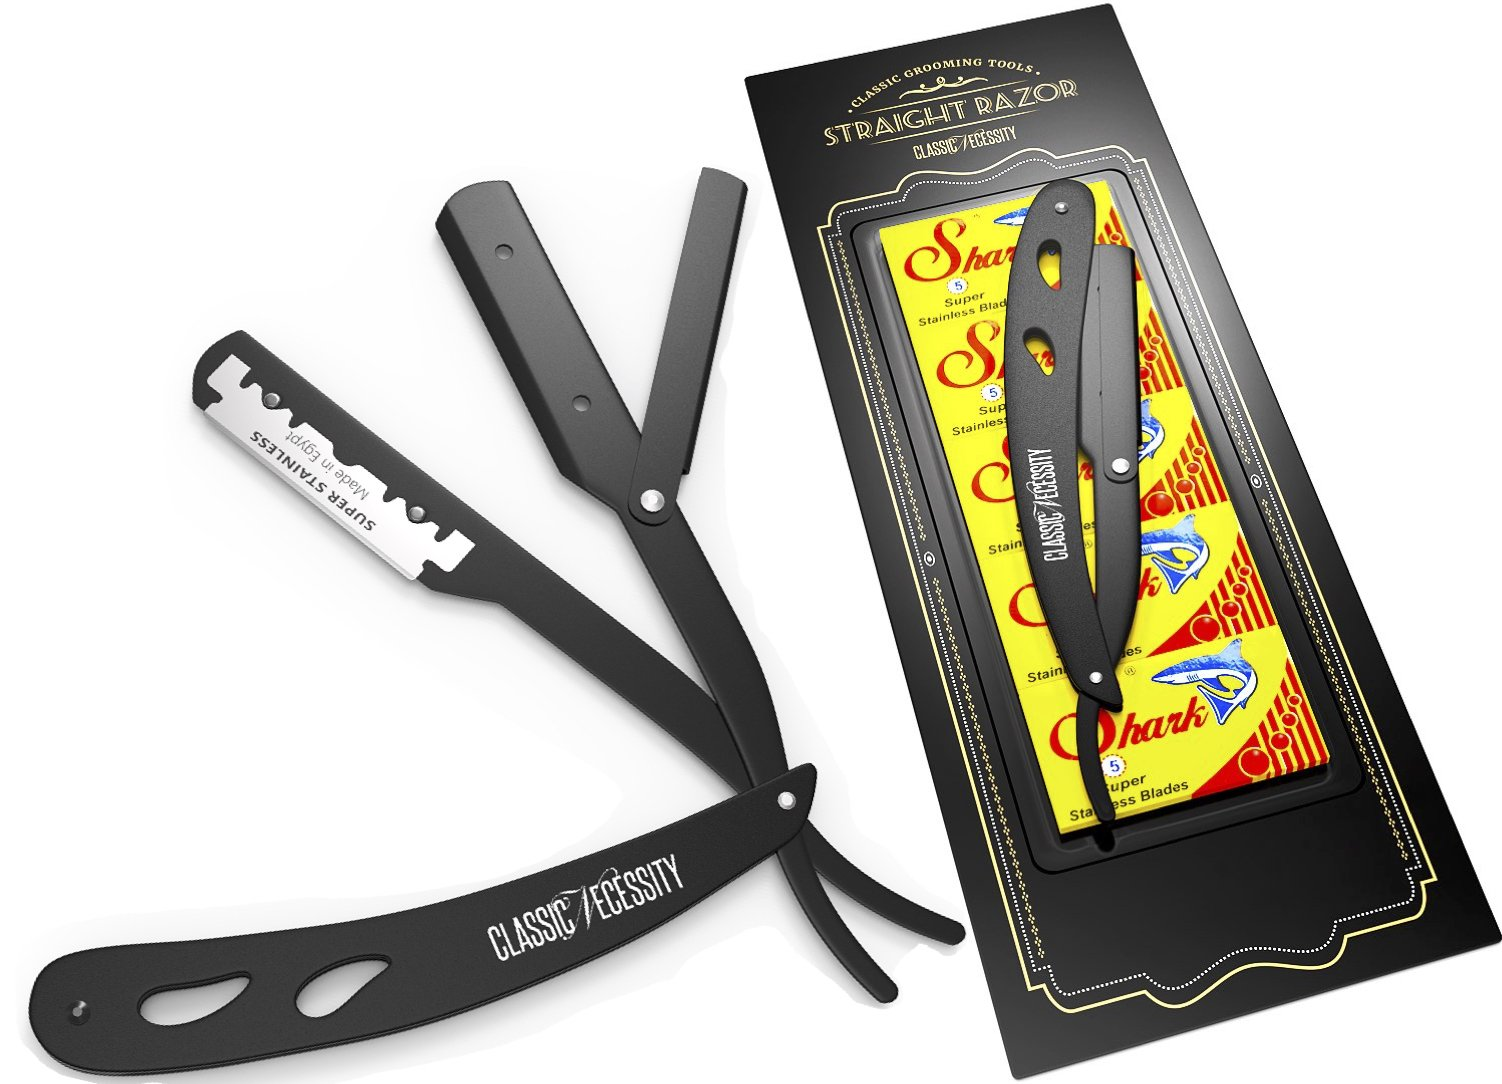 Straight Razor - Shaving Kit 100 Shark Razor Blades Single for Straight Edge Razor that break in 2 from 50 Double Edge Blades (100 Single Edge Blades + Straight Razor)